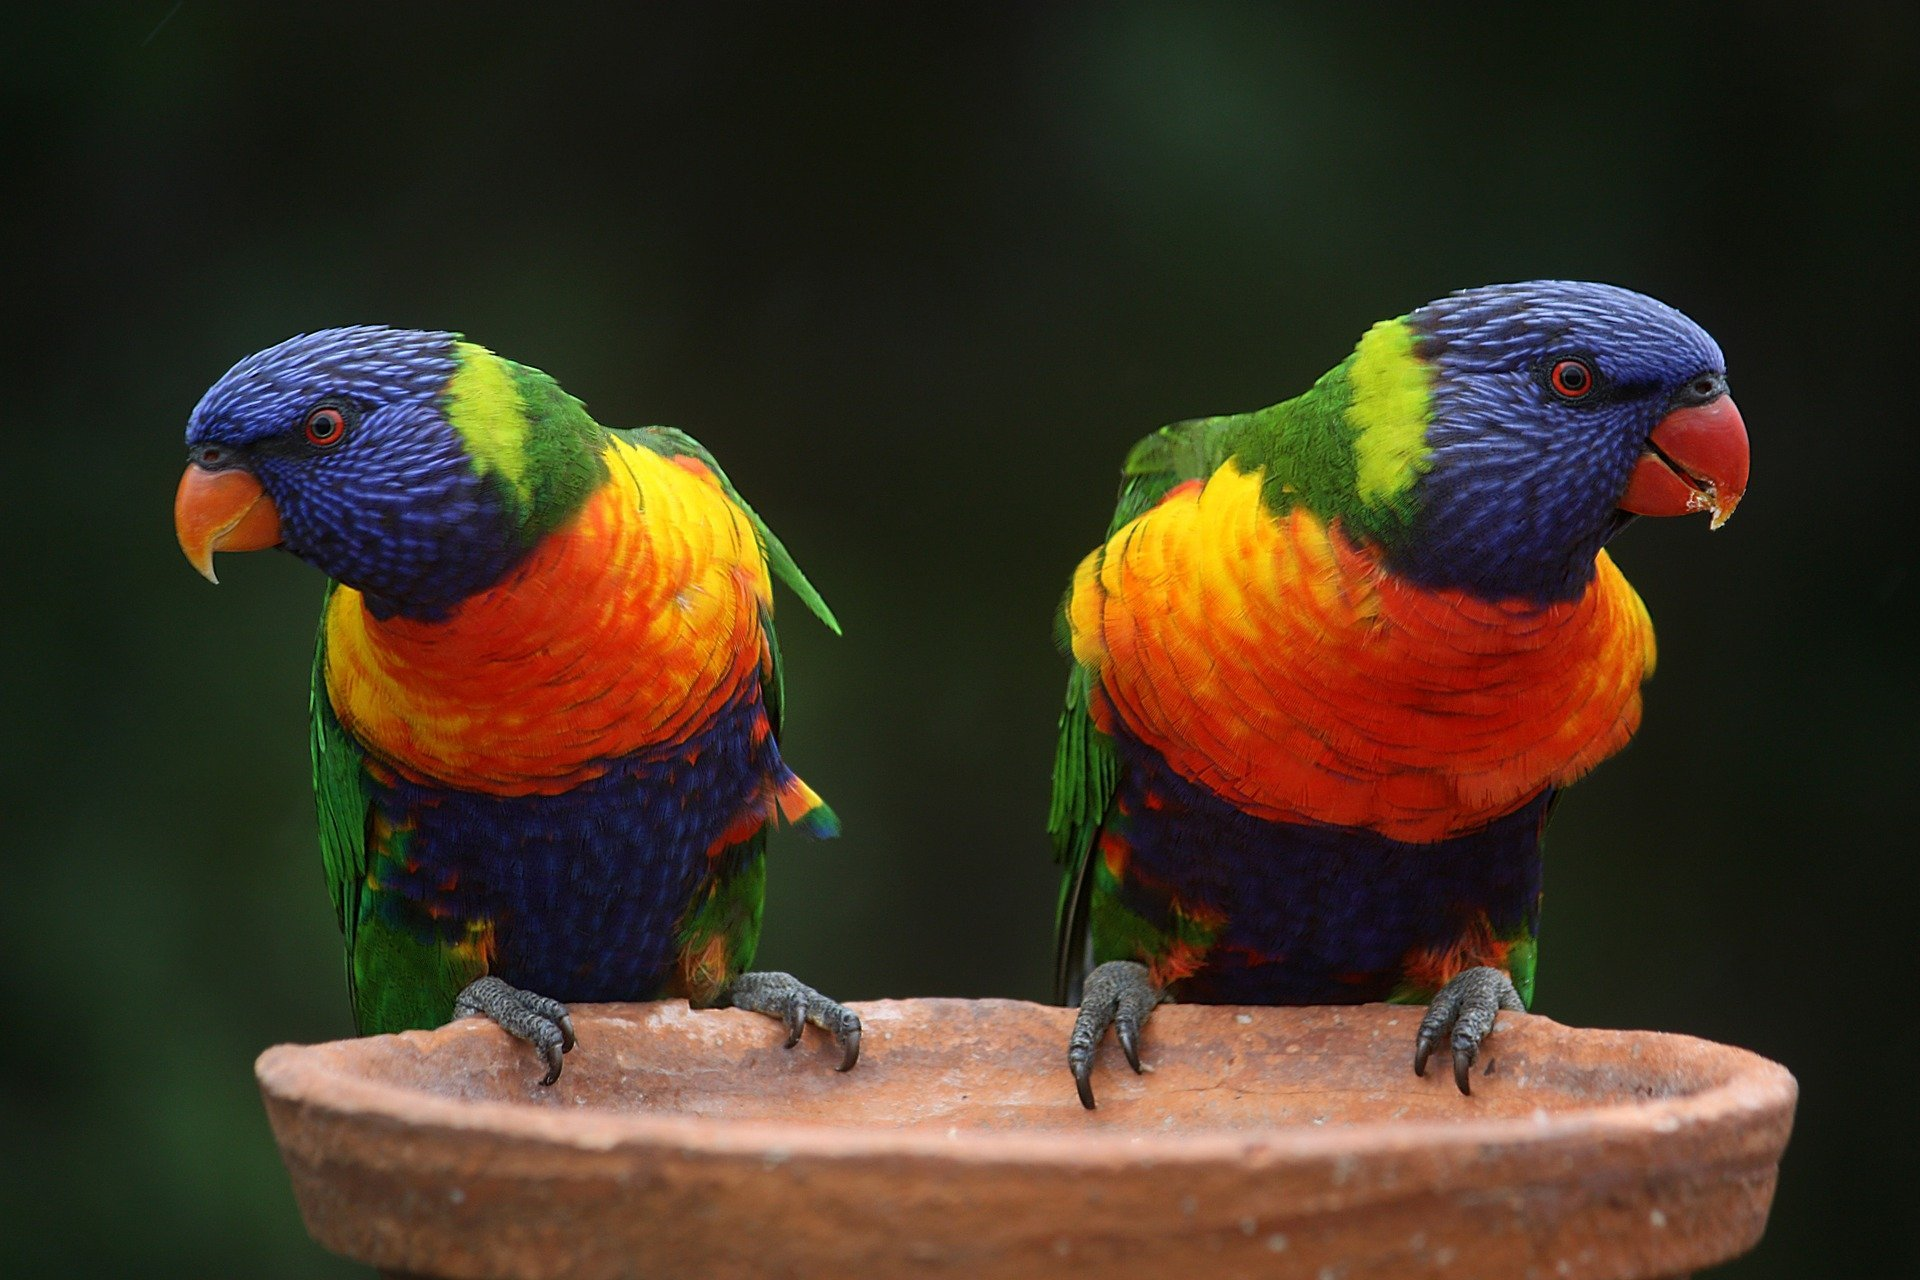 Rainbow Lorikeets on a perch. | Source: Magee/Pixabay